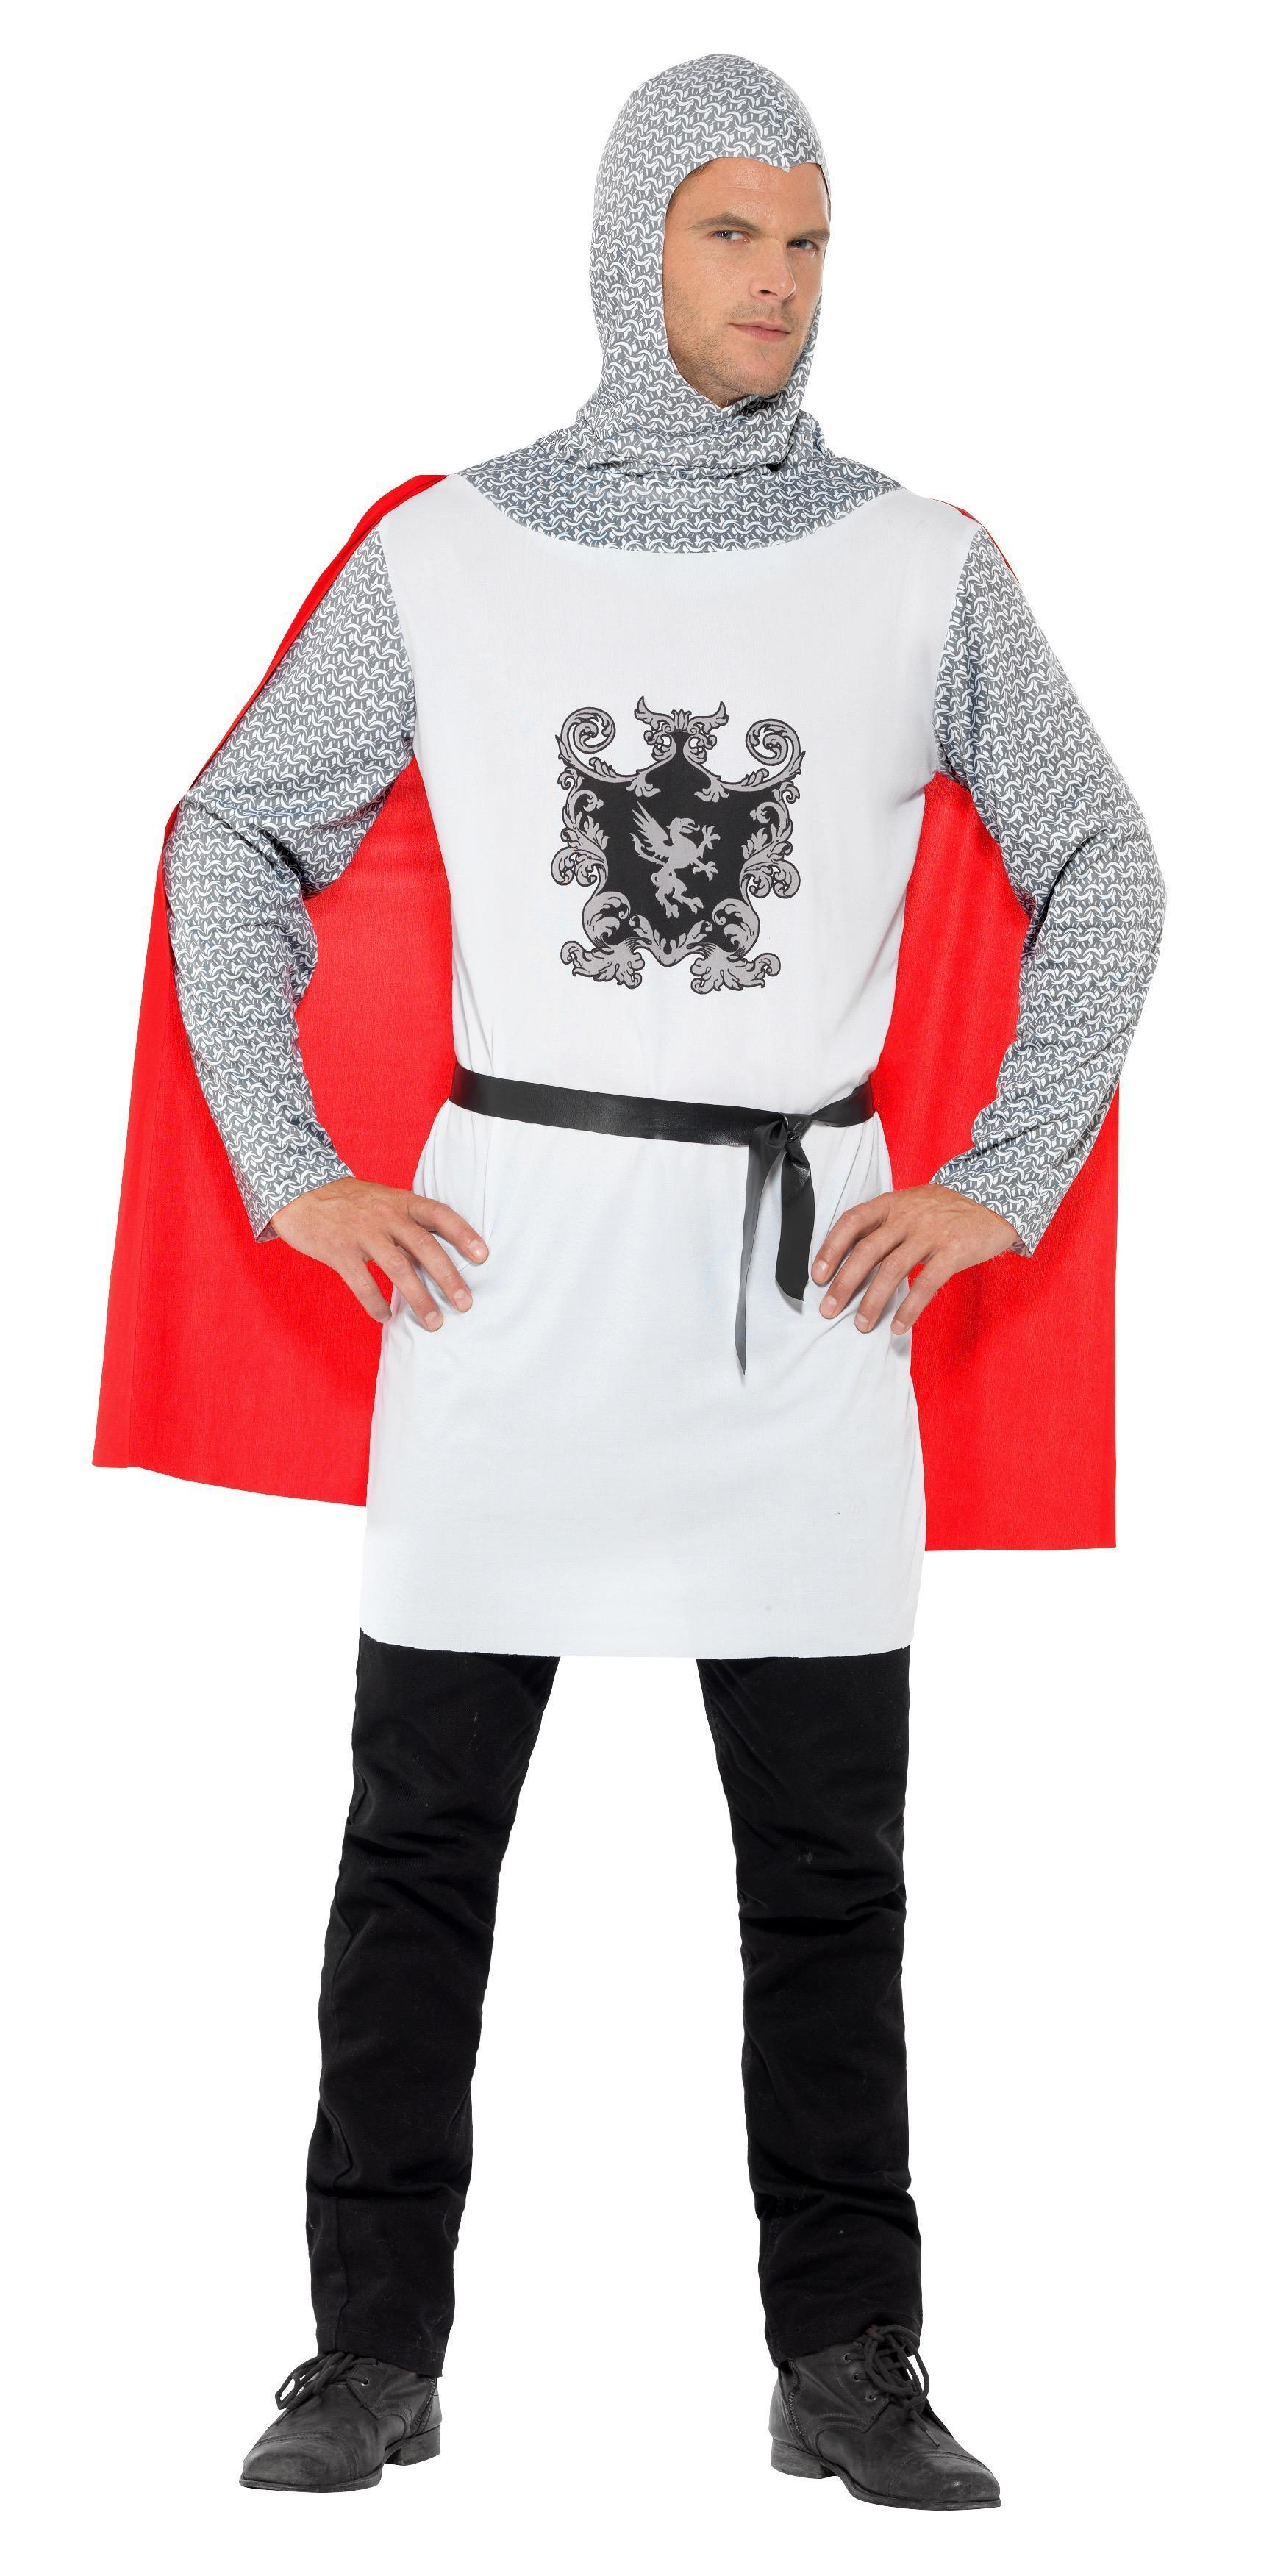 Knight Costume Economy White